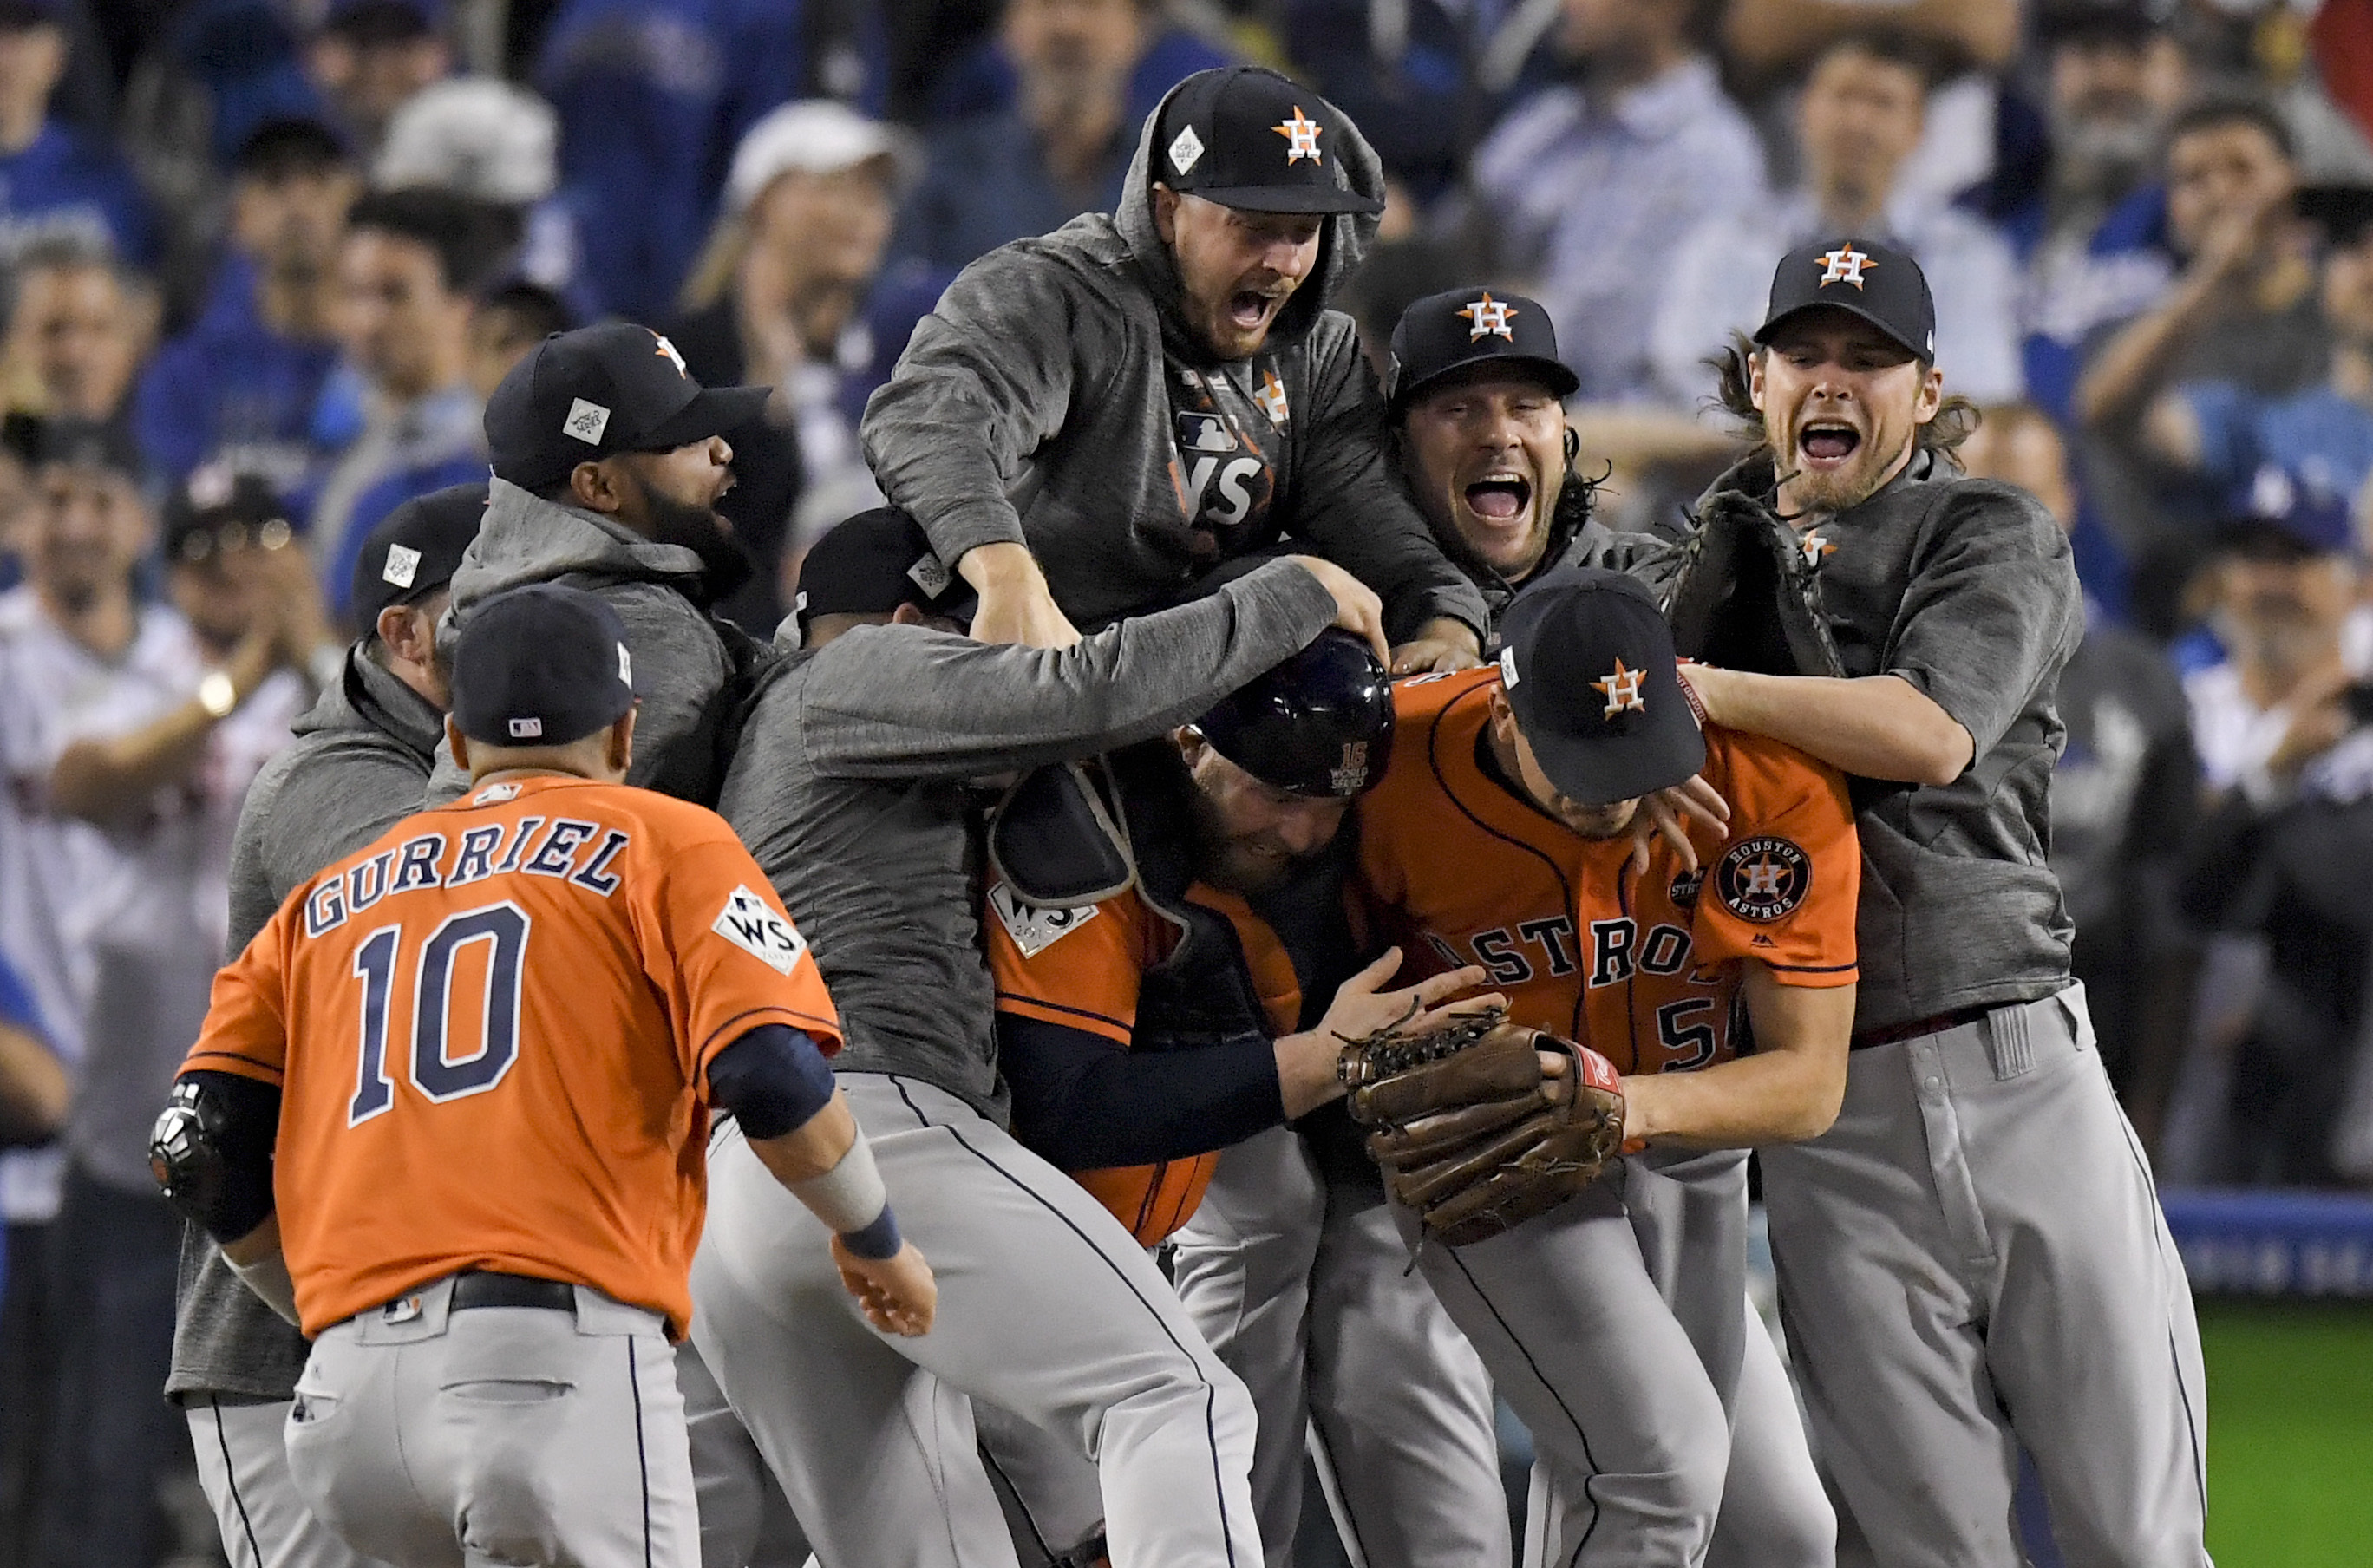 The Houston Astros celebrate after their win against the Los Angeles Dodgers in Game 7 of the World Series Wednesday, Nov. 1, 2017, in Los Angeles. The Astros won 5-1 to win the series 4-3. (AP Photo/Mark J. Terrill)